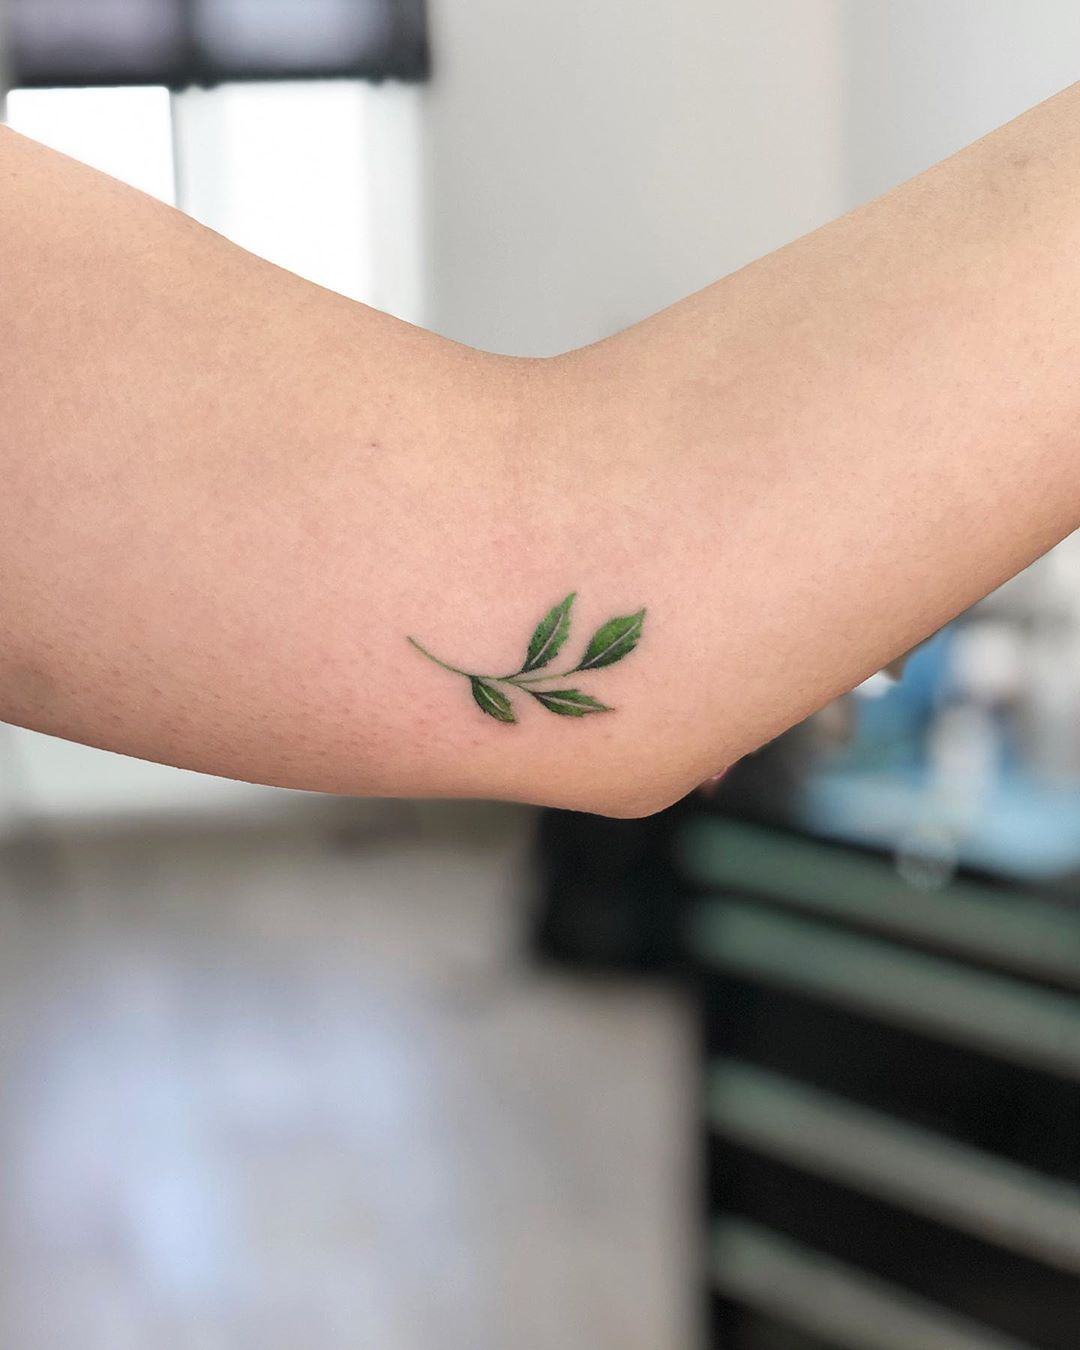 Tiny leaves by @soychapa